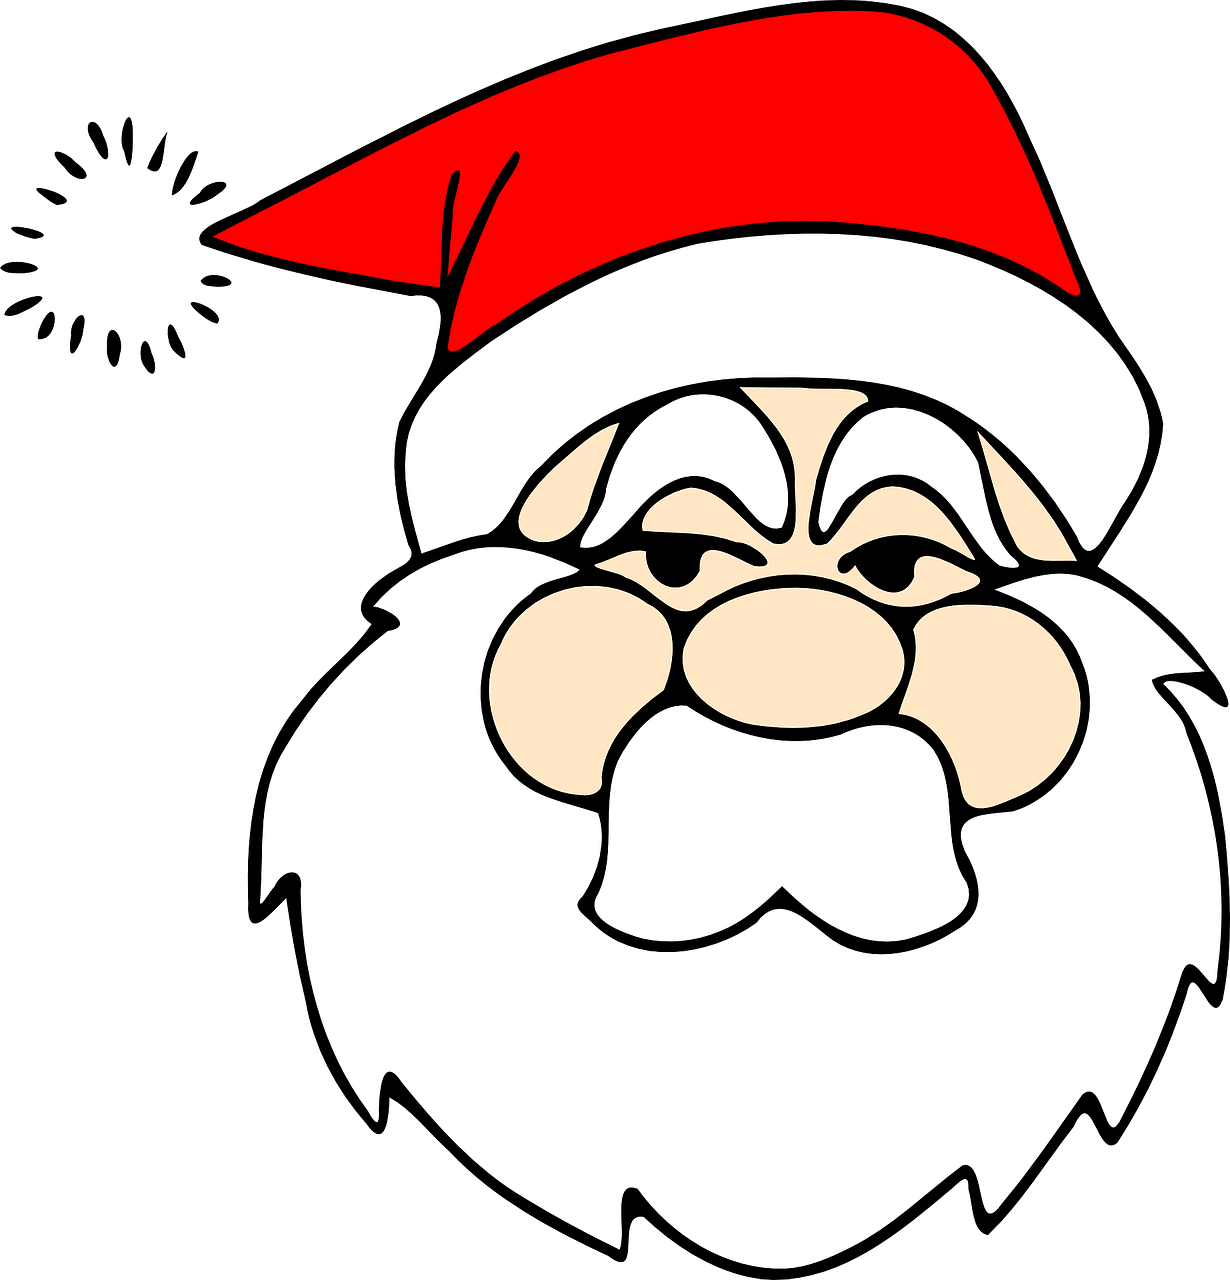 santa santa claus jolly old elf free photo